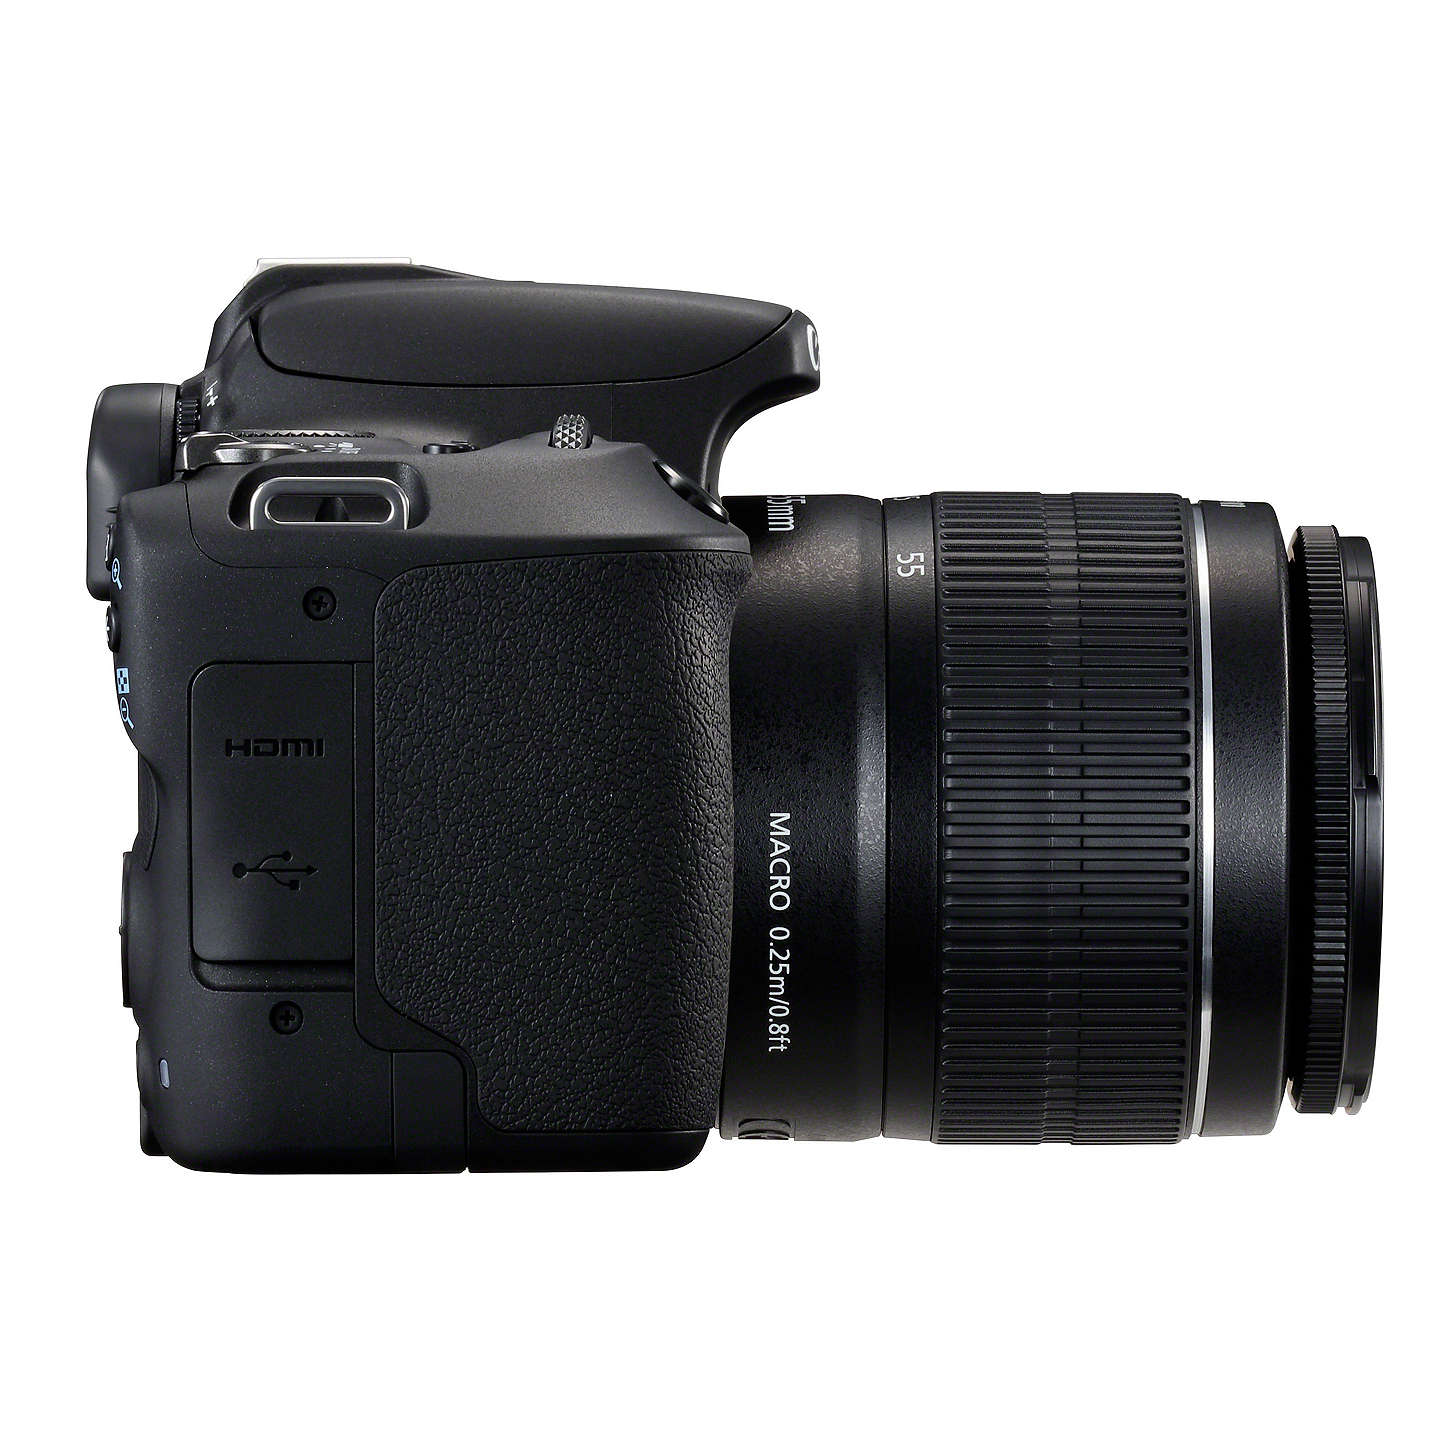 "BuyCanon EOS 200D Digital SLR Camera with 18-55mm f/3.5-5.6 III Lens, 1080p Full HD, 24.2MP, Wi-Fi, Bluetooth, NFC, Optical Viewfinder, 3"" Vari-angle Touch Screen, Black Online at johnlewis.com"